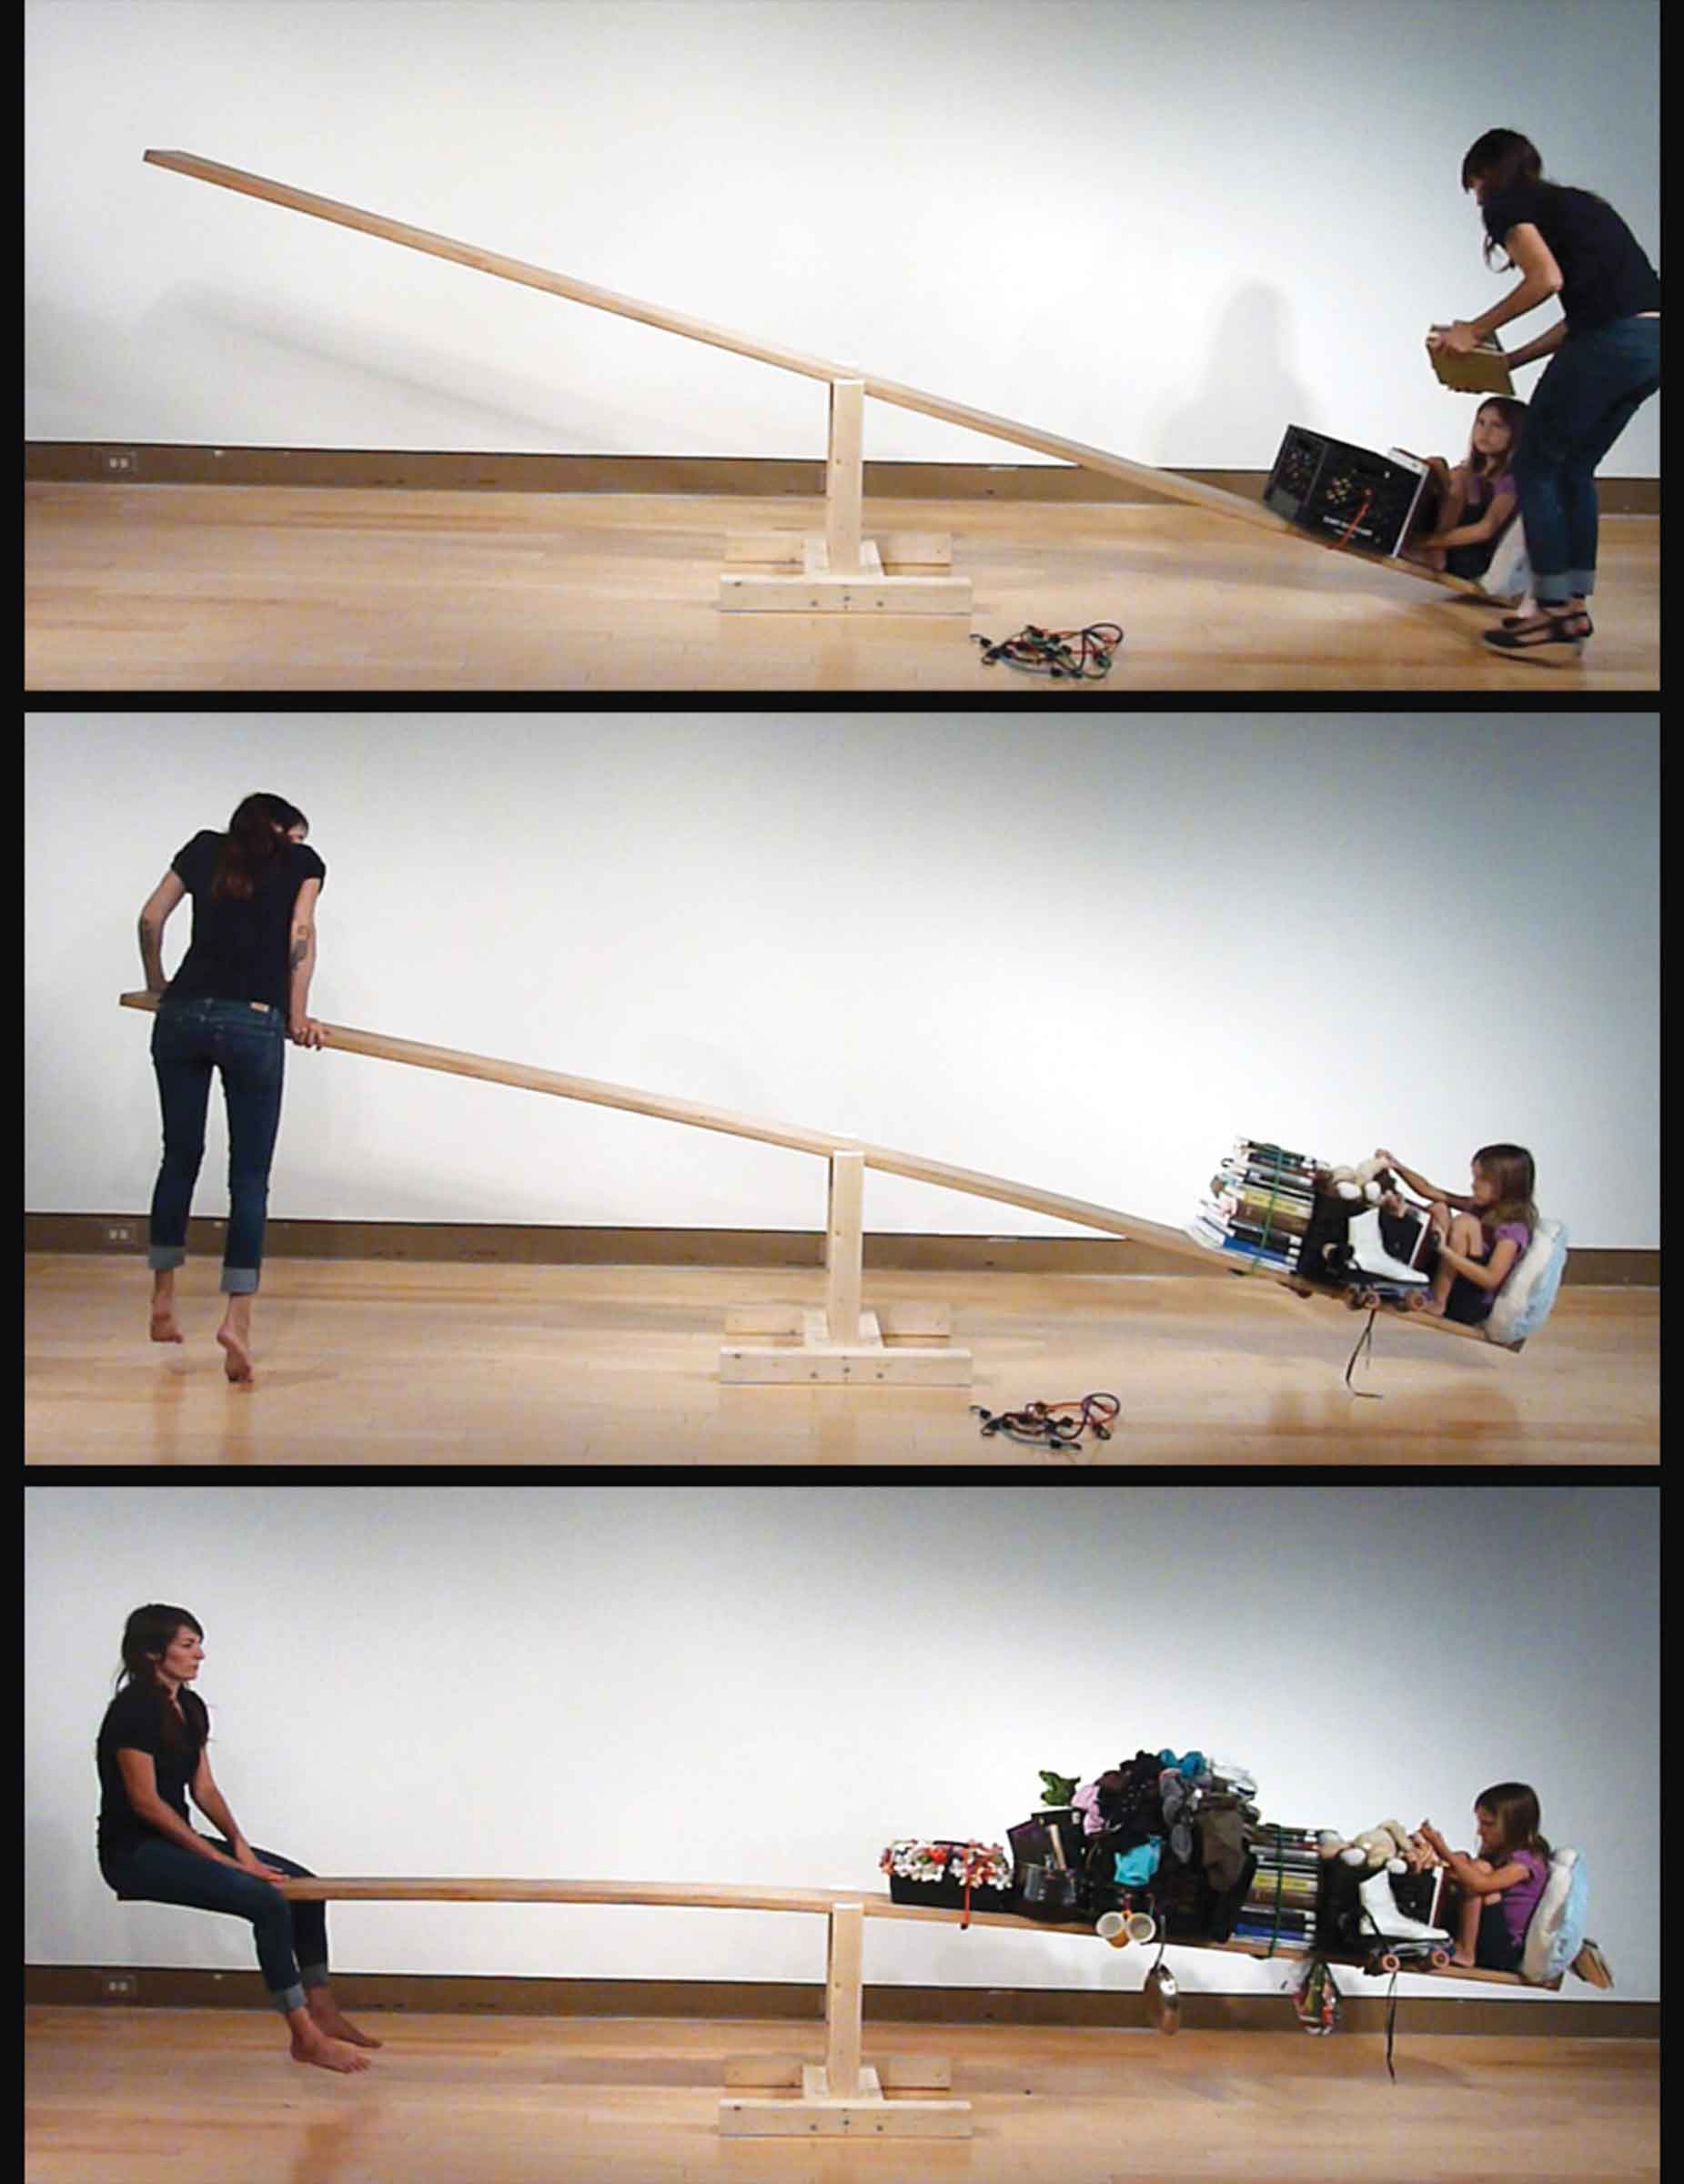 Courtney Kessel, In Balance With, 2012, 30-minute performance. Courtesy of the artist.